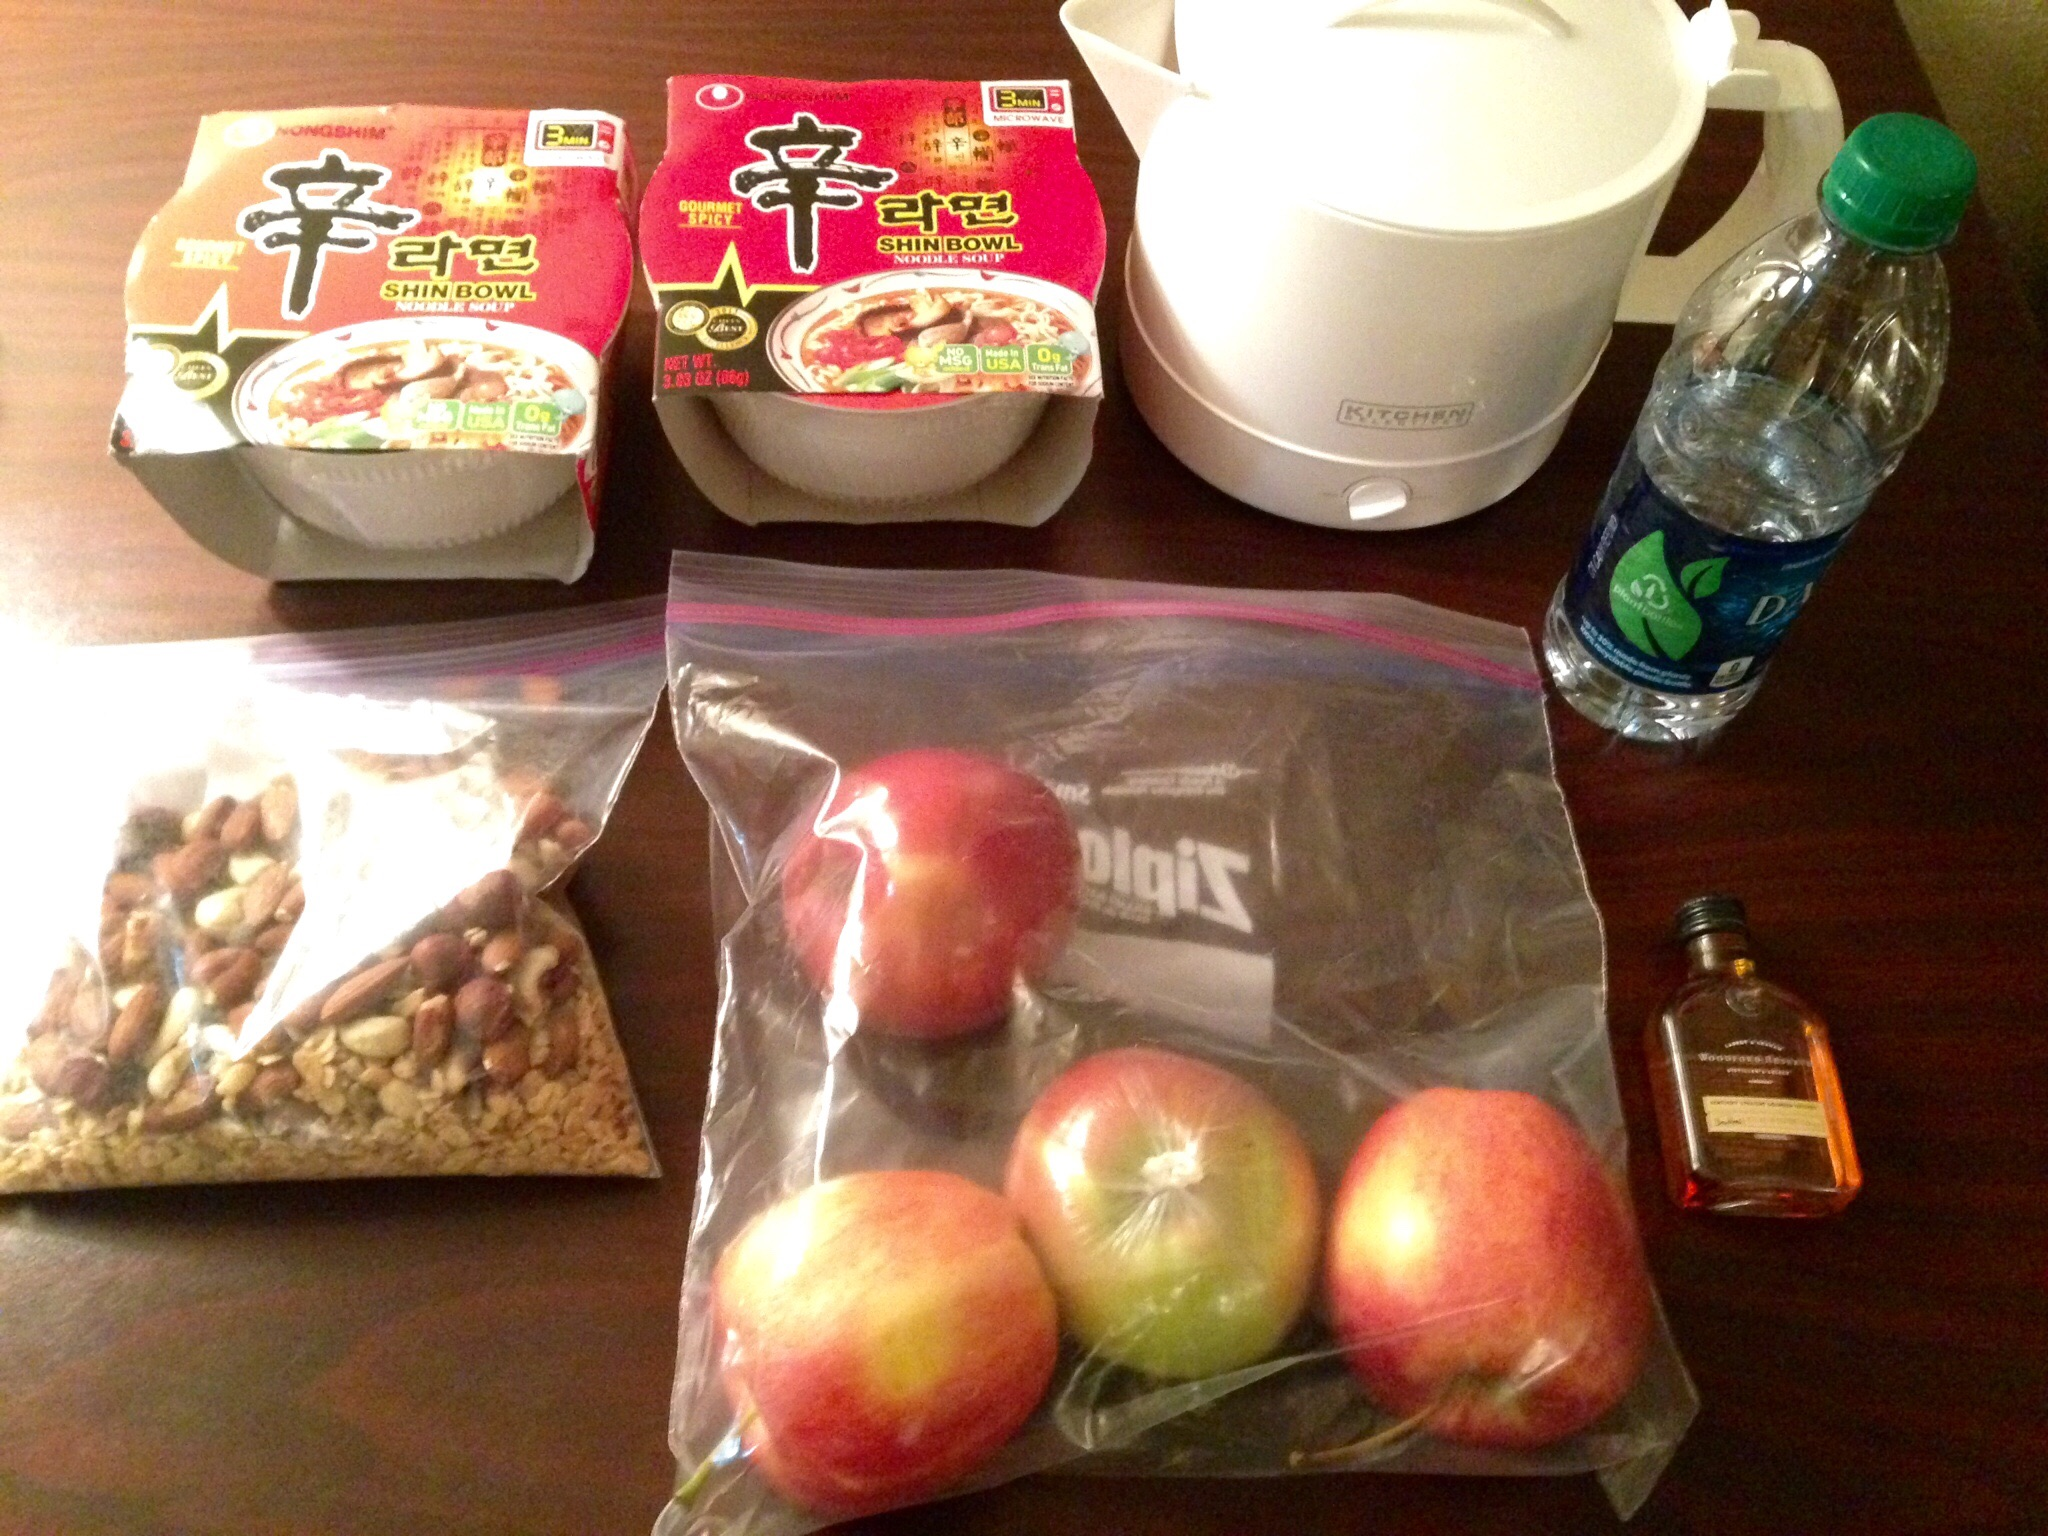 I don't usually carry this much food with me. Granola mix and mixed nuts are easy easy to travel with. Apples supplement some much needed vitamins (I picked up several more from Atlanta's Delta Skyclub lounge). This time I also brought couple of Shin Noodle Bowl and a water boiler!